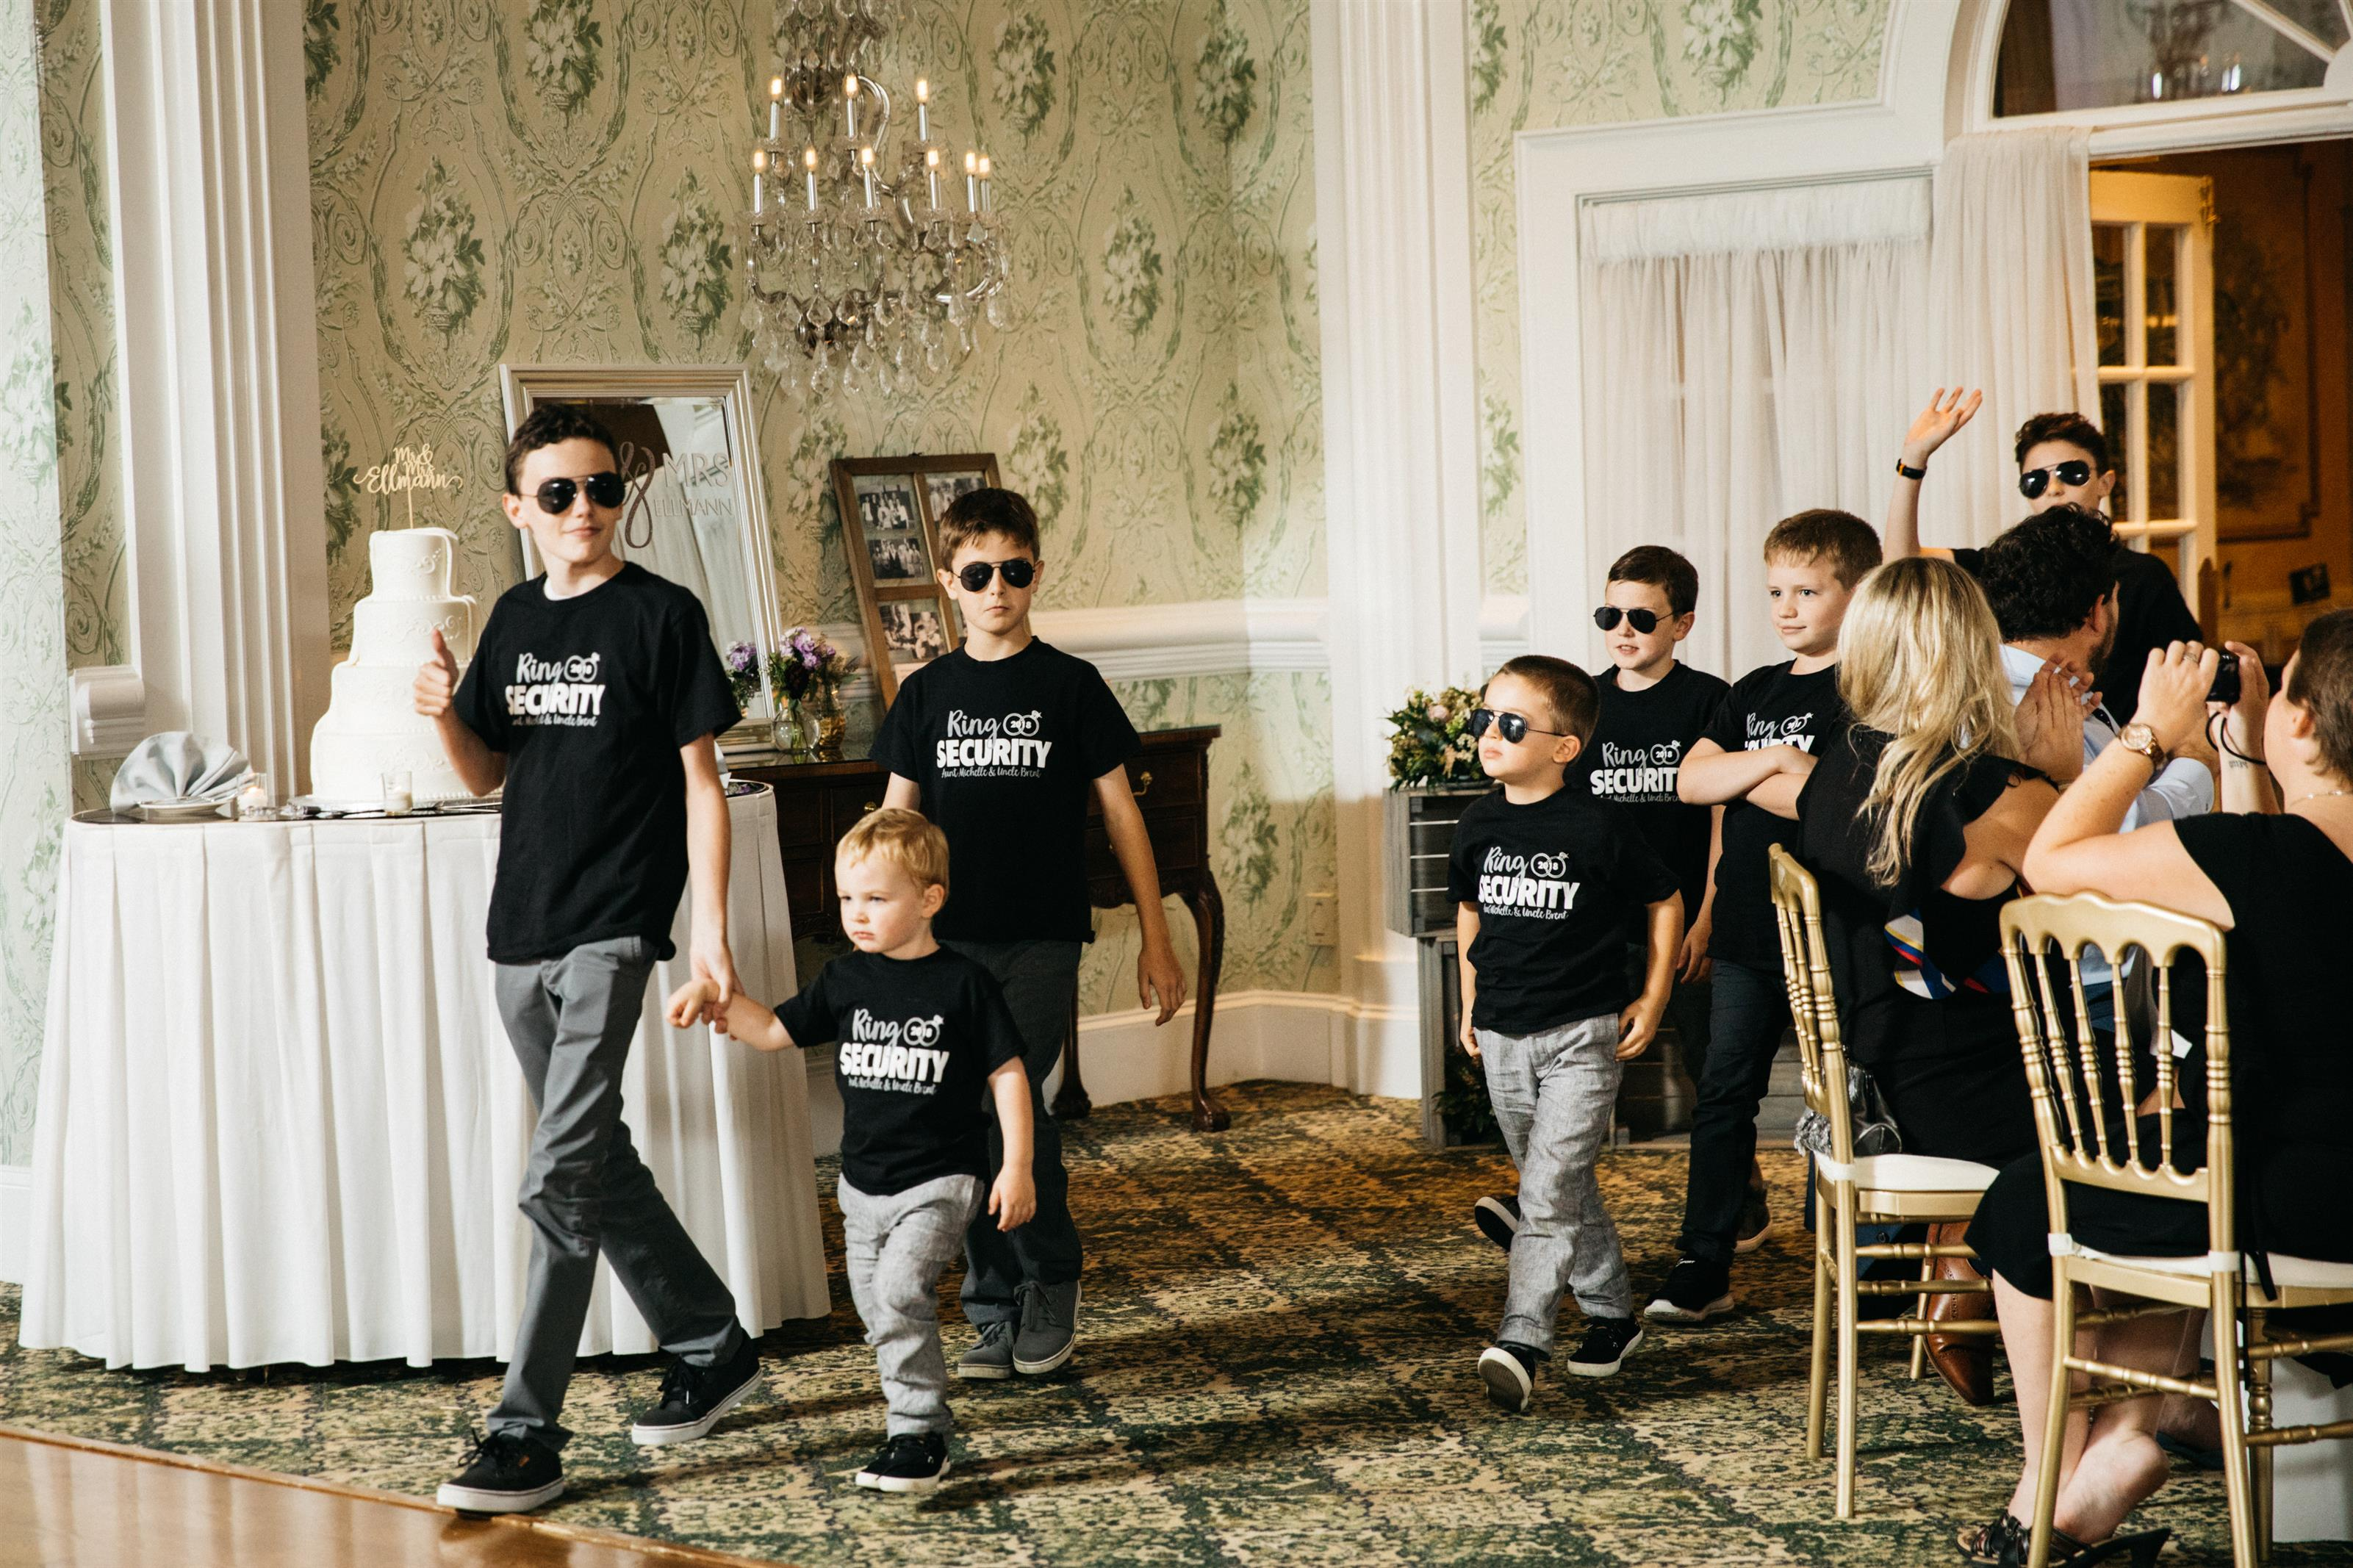 group of children walking in the venue in matching shirts